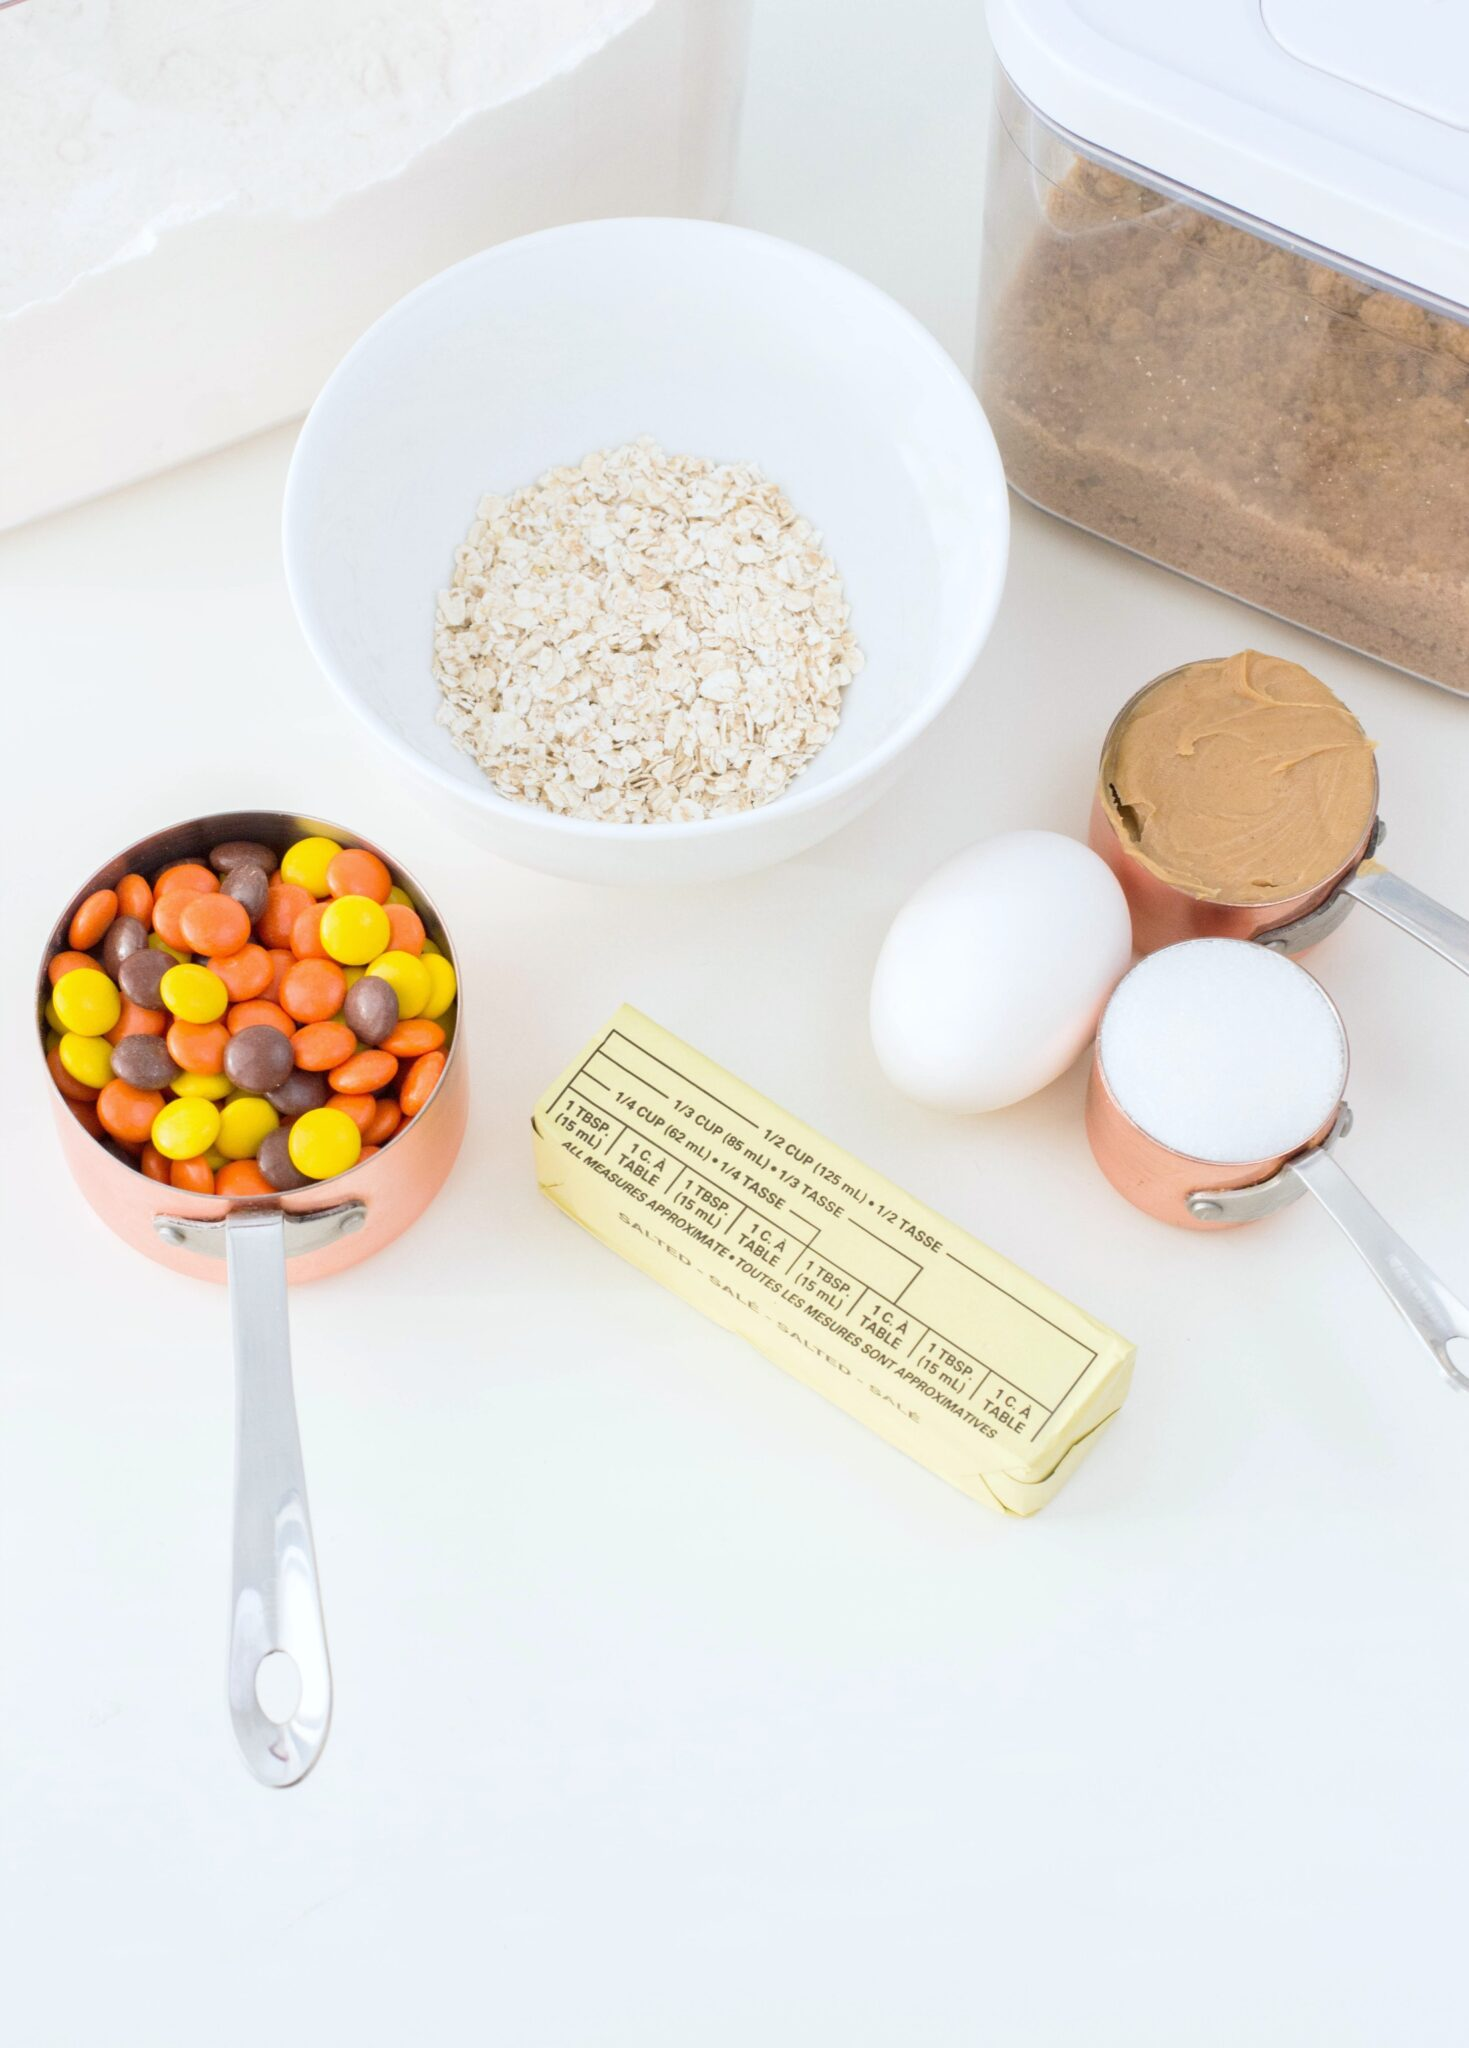 A cup full of Reese's Pieces, a bowl of brow sugar, oats, flour, eggs, peanut butter, and butter are shown as ingredients needed for Reese's Pieces Oatmeal Peanut Butter Cookies.